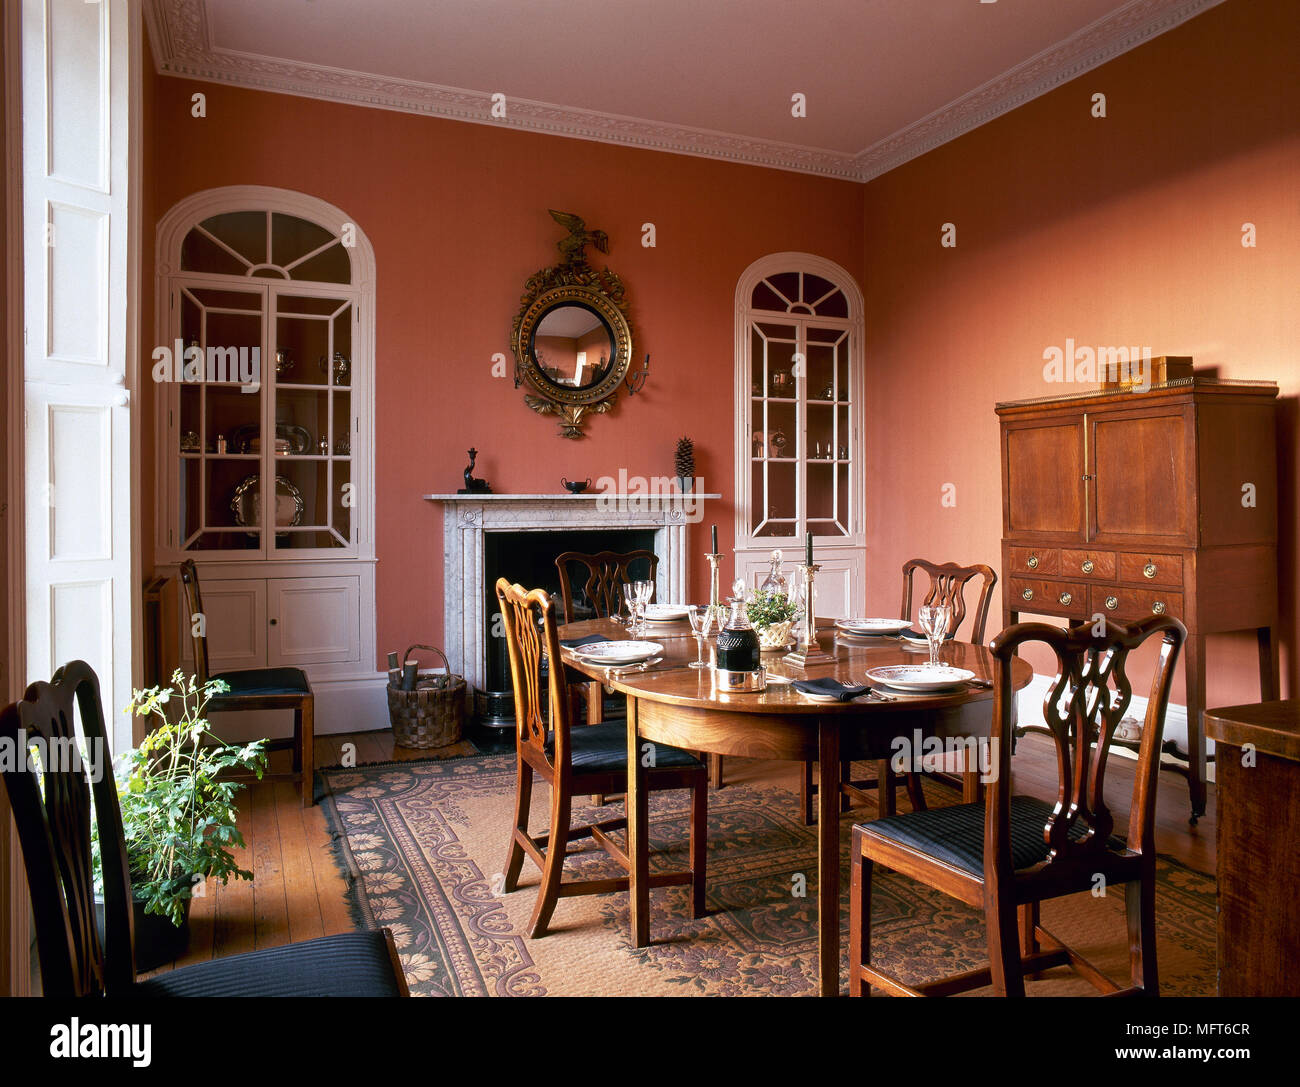 Orange Kitchen Room With White Cabinets Stock Image: Traditional Dining Room With Terracotta Colour Walls, Wood